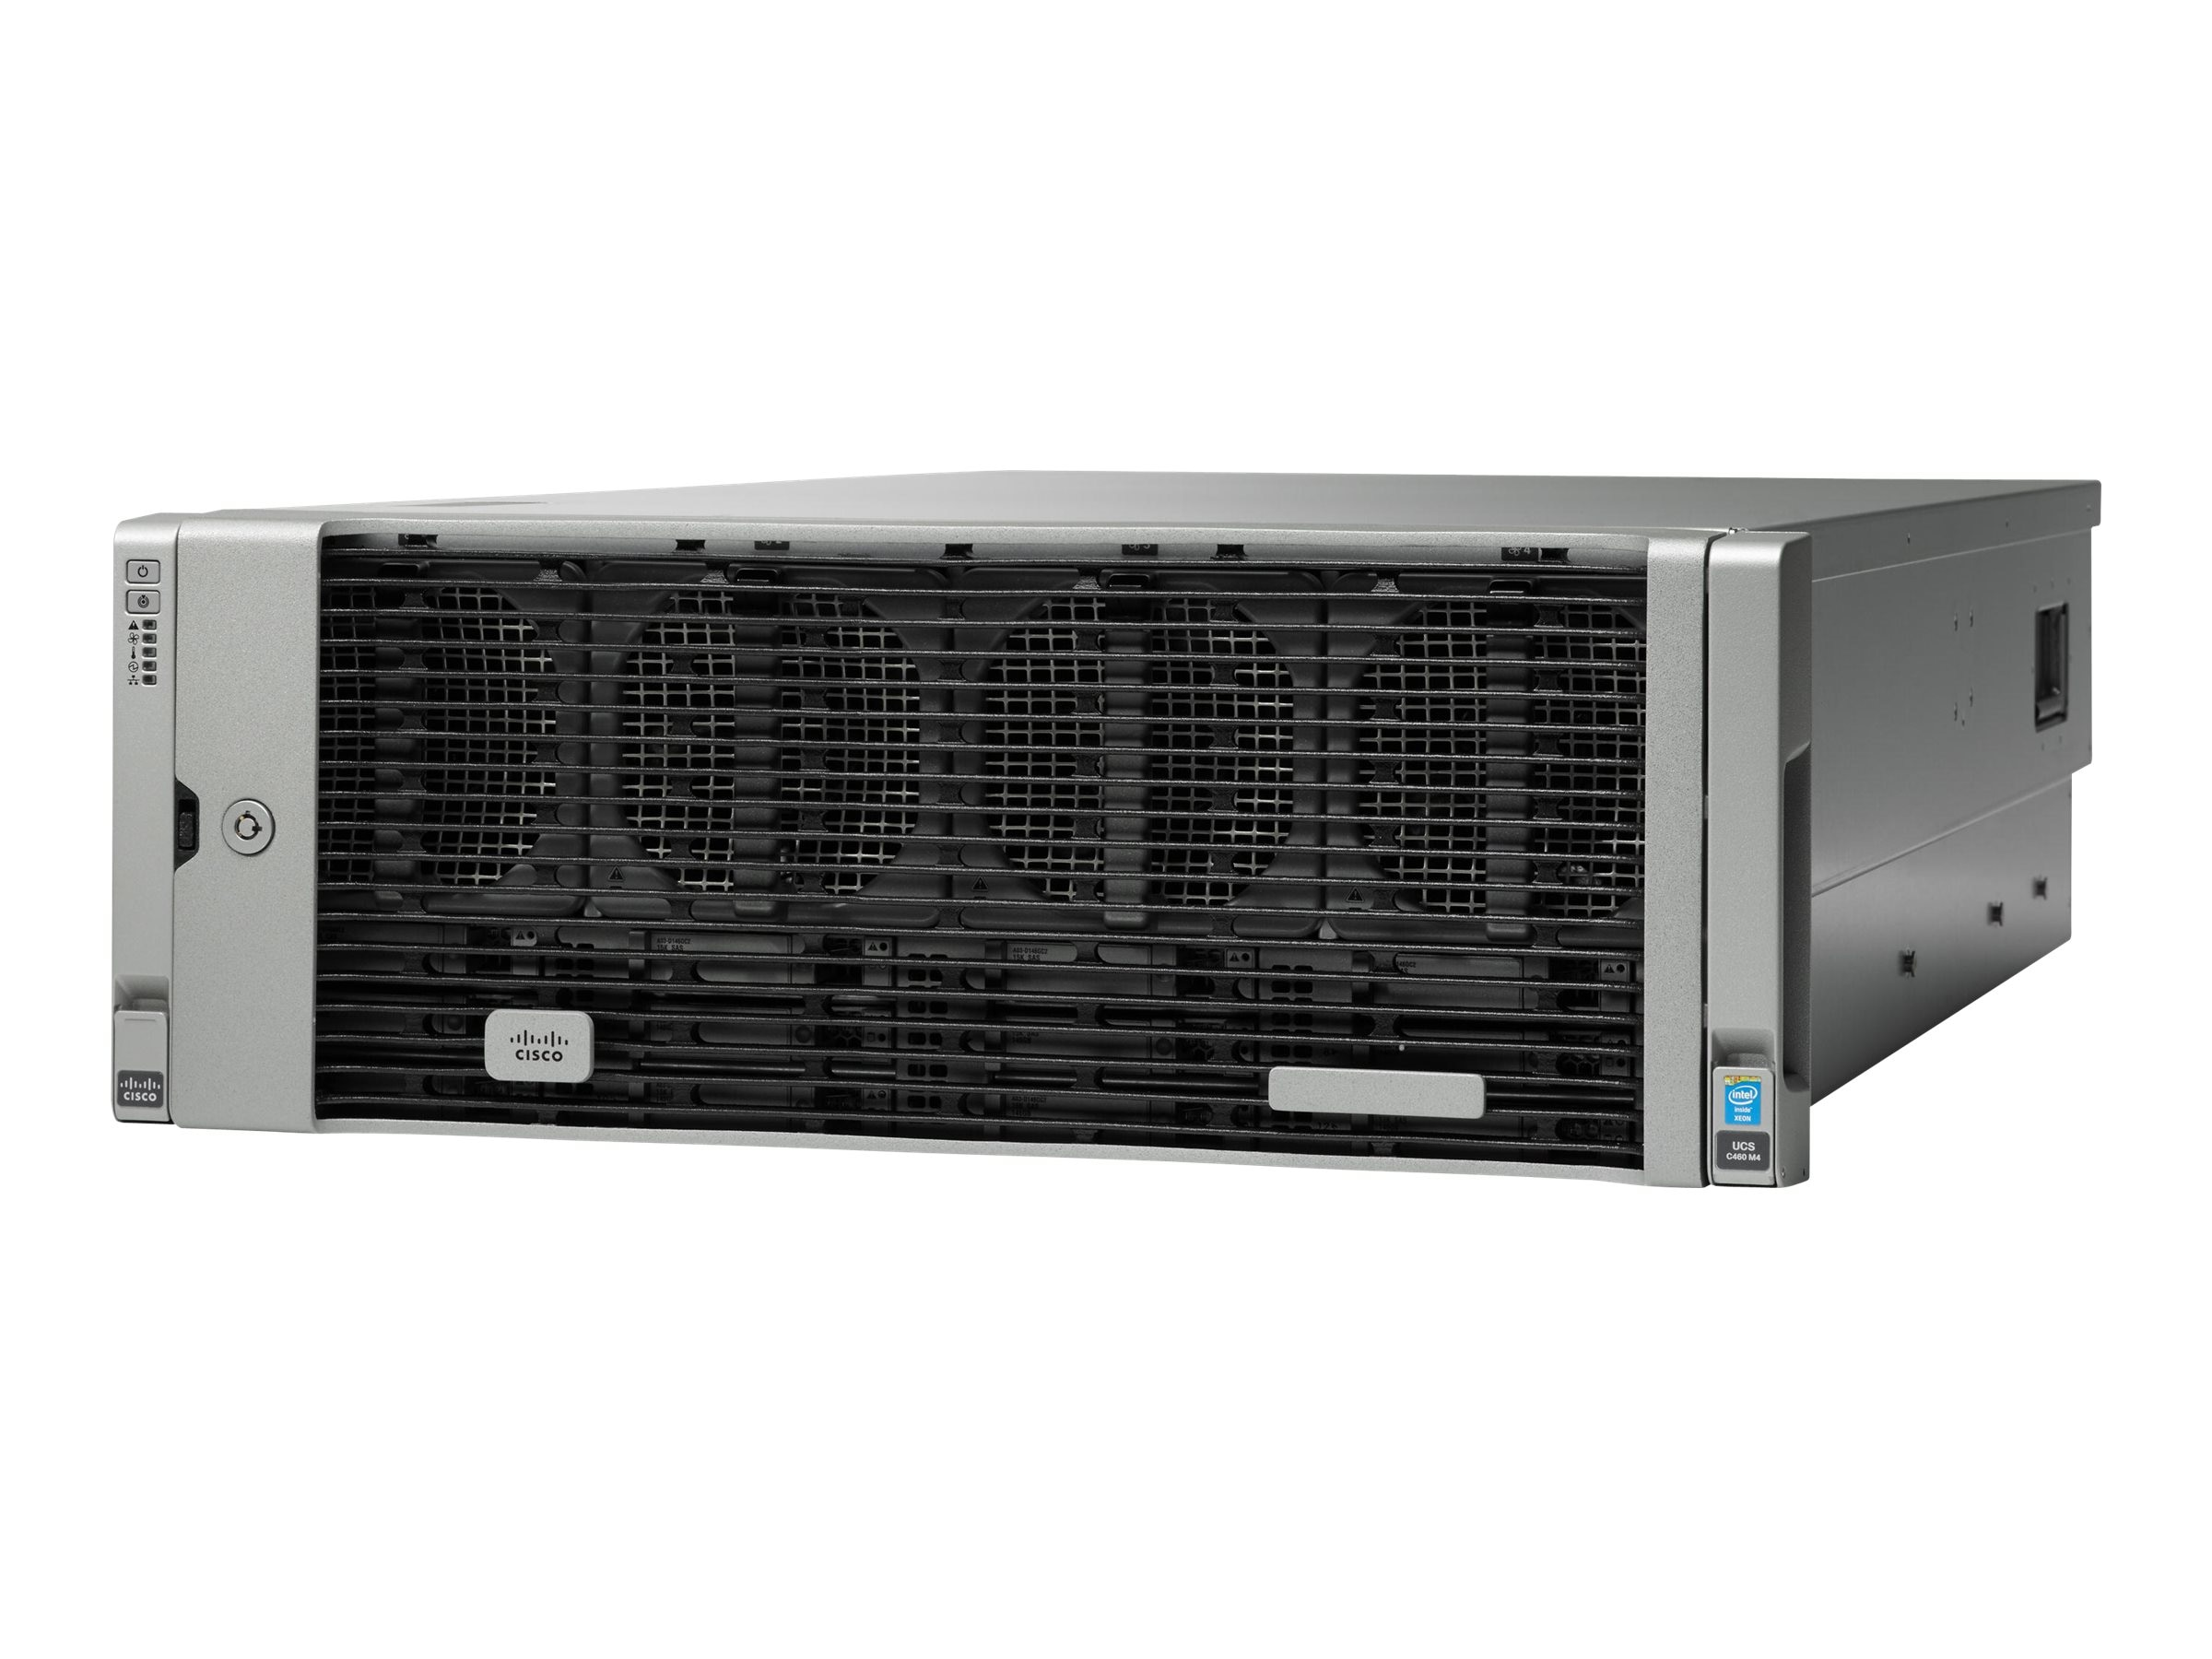 Cisco Barebones, UCS C460 M4 Base with Rails, UCSC-C460-M4-CH